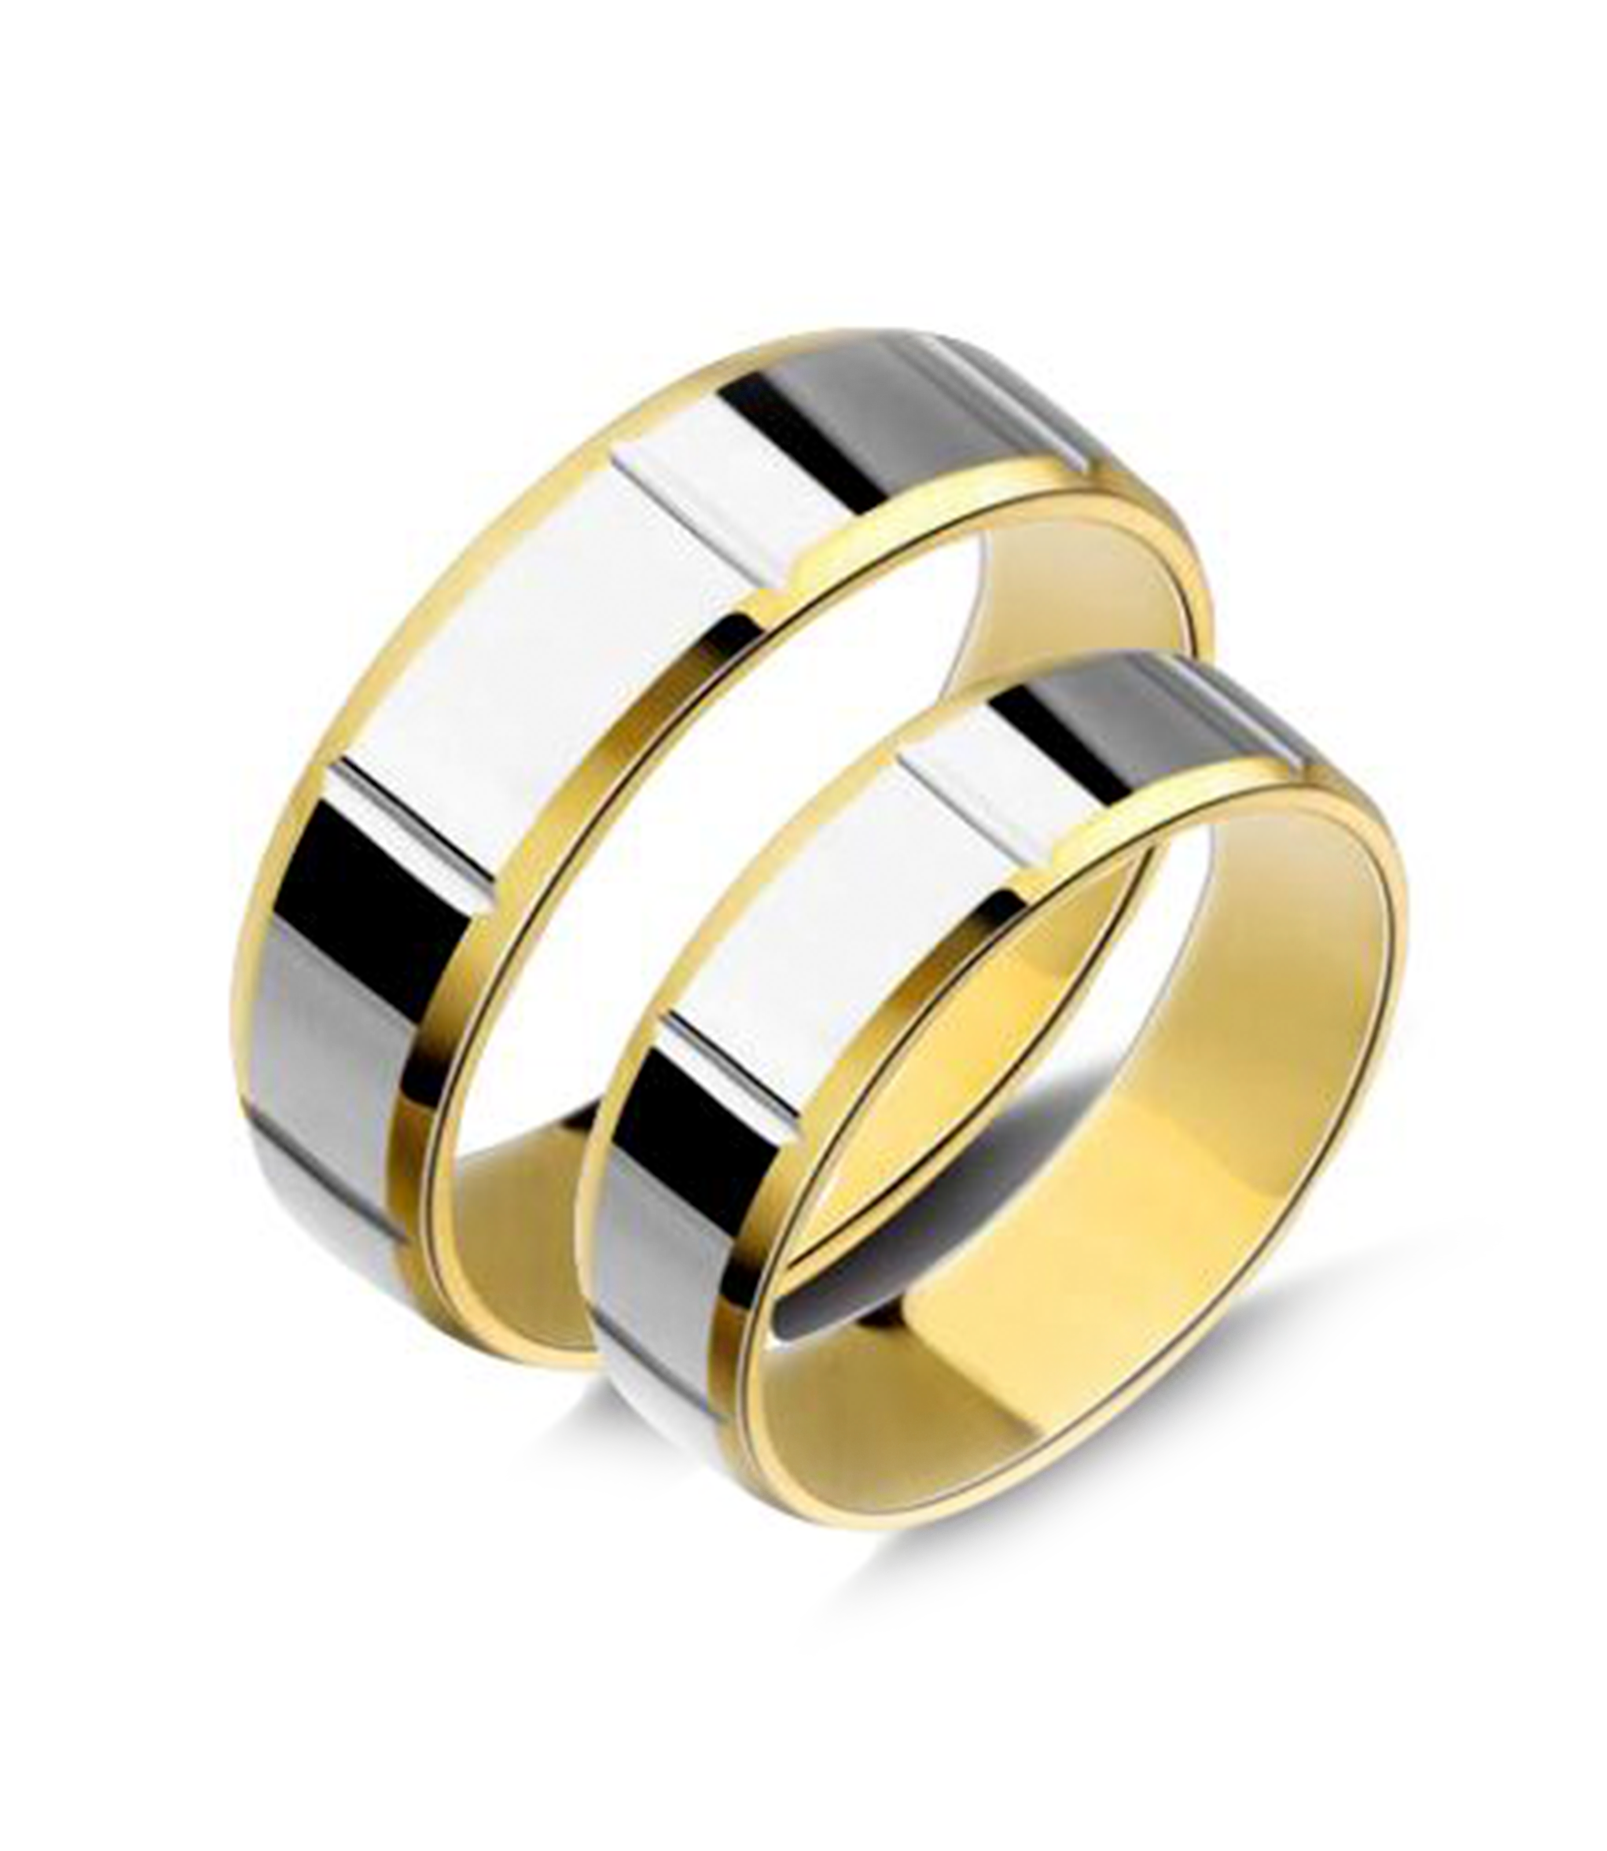 Smooth Two Tone Gold Plated Titanium Wedding Bands (Men)